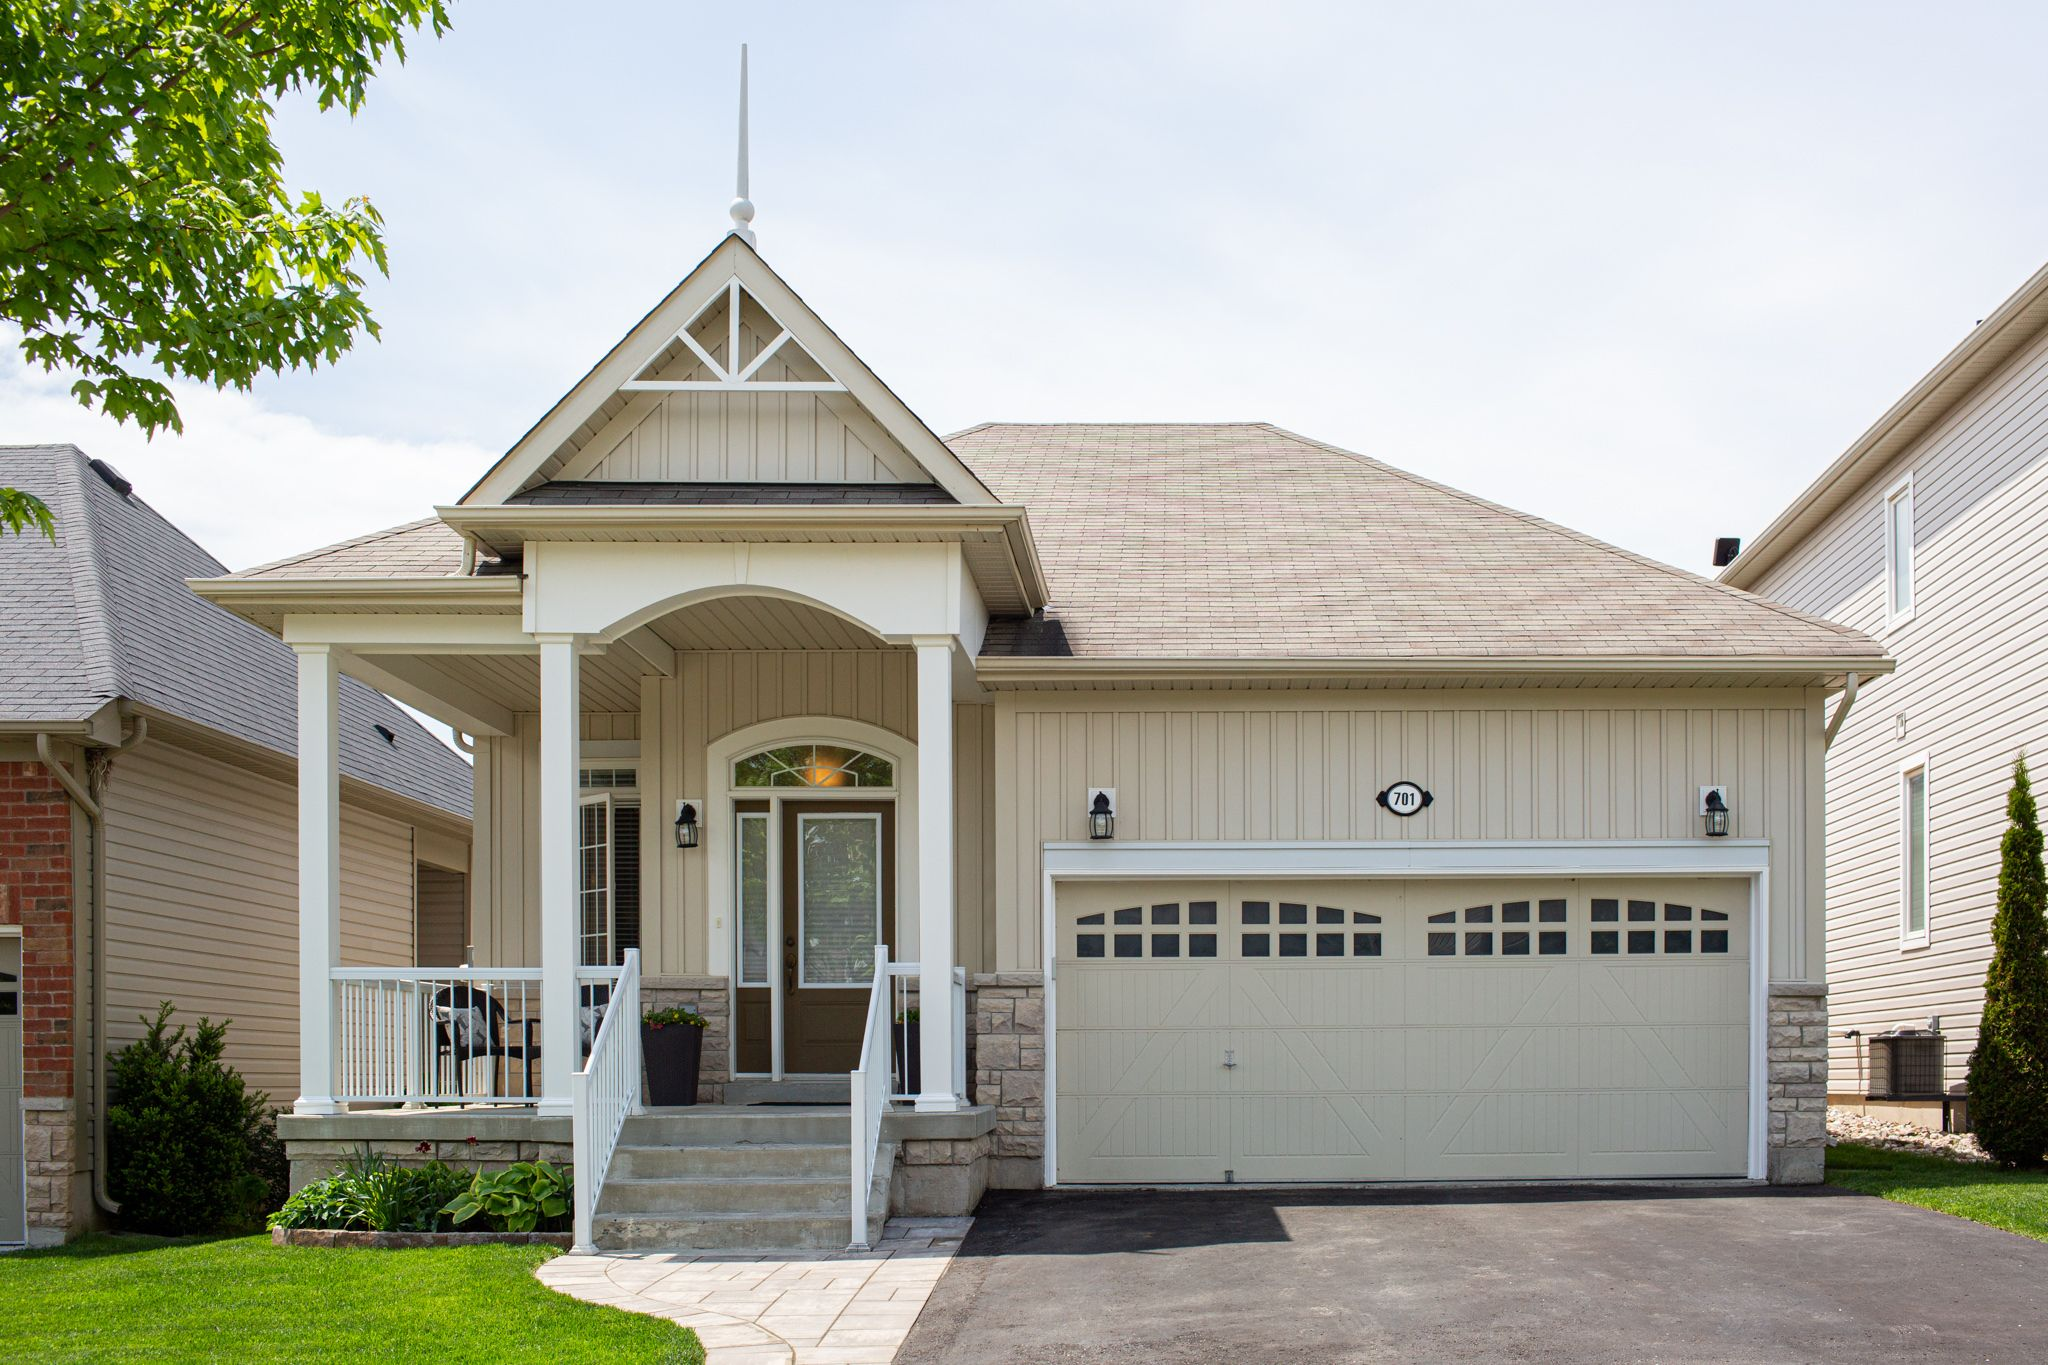 Main Photo: 701 Prince of Wales Drive in Cobourg: House for sale : MLS®# 262394